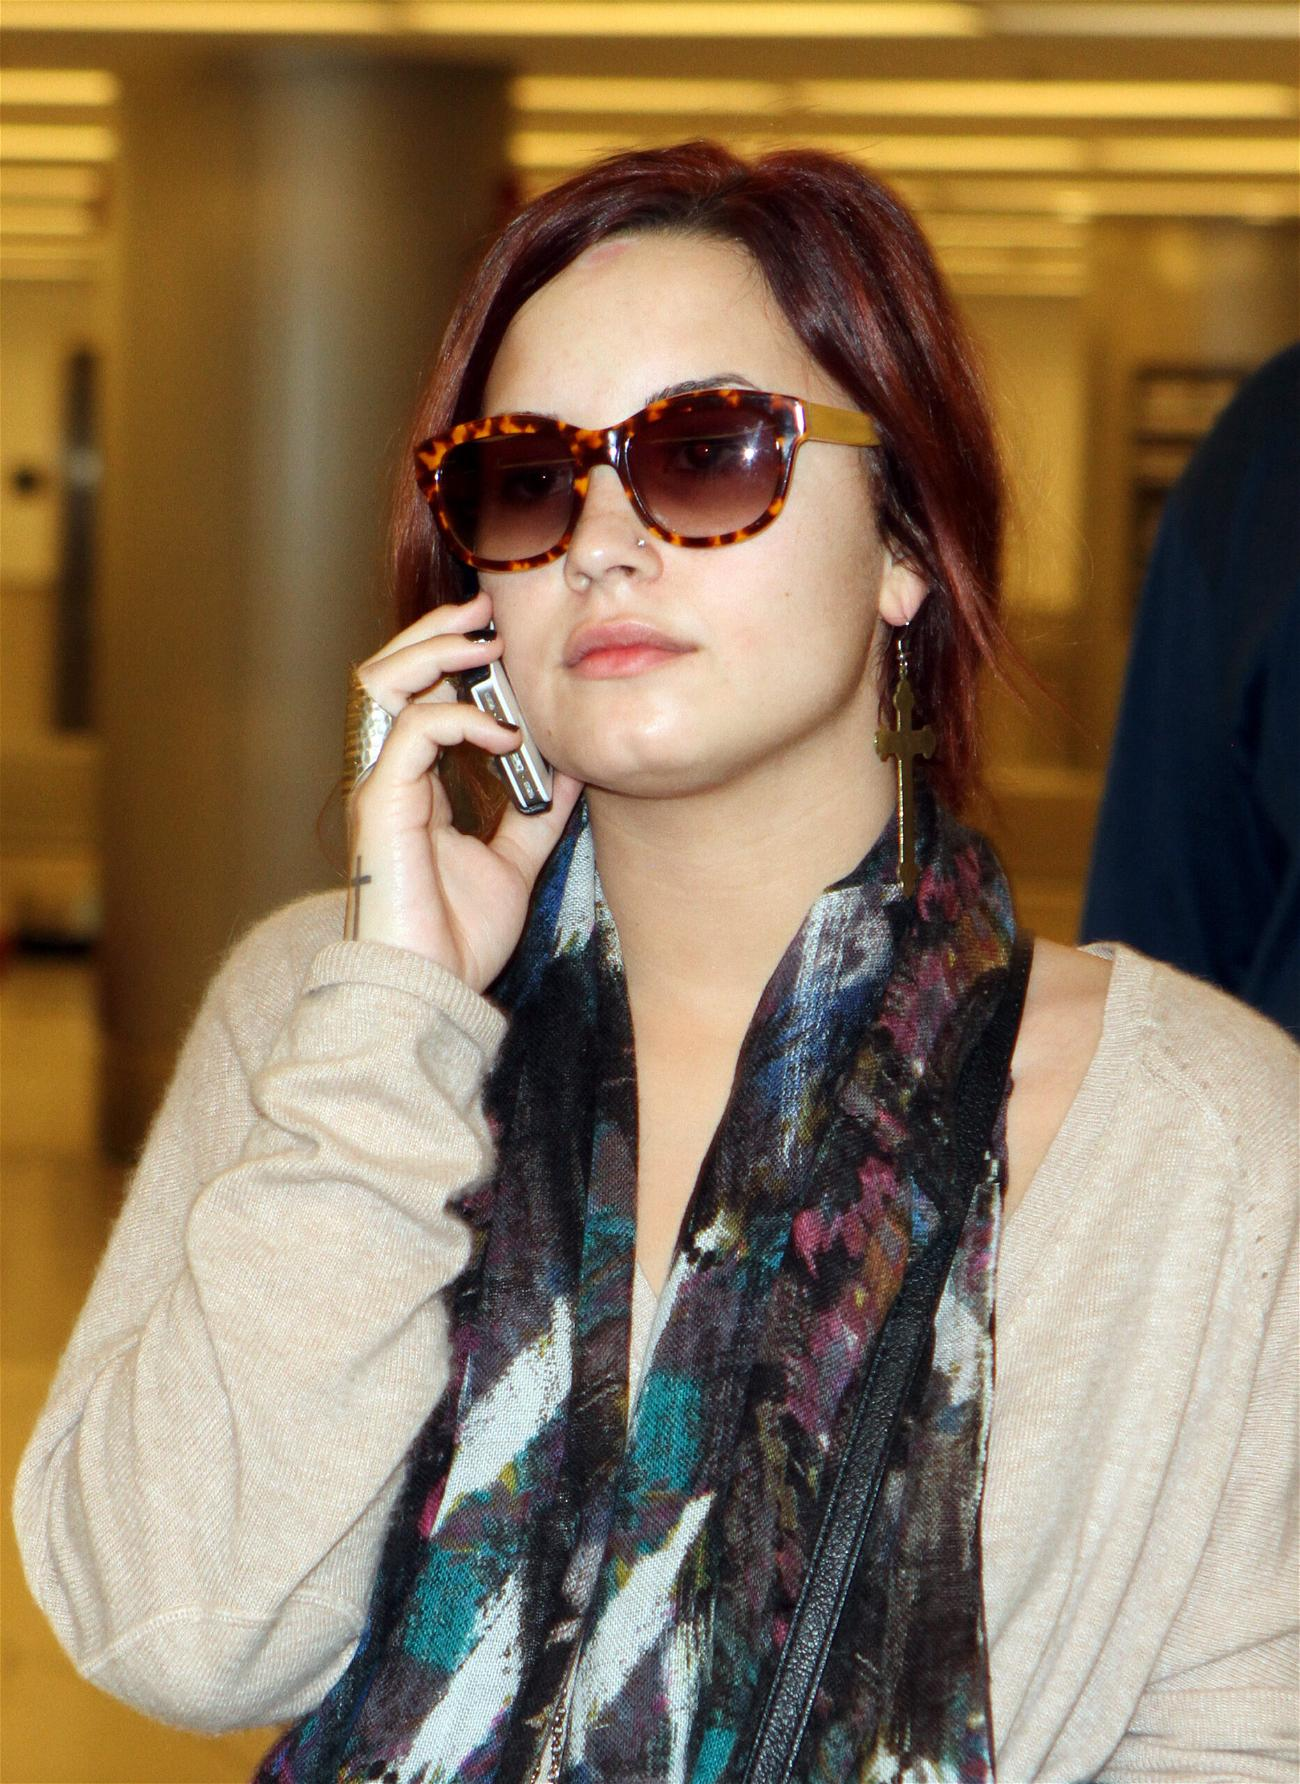 Demi Lovato arrives to Miami International Airport to perform a the Y-100 Jingle Ball